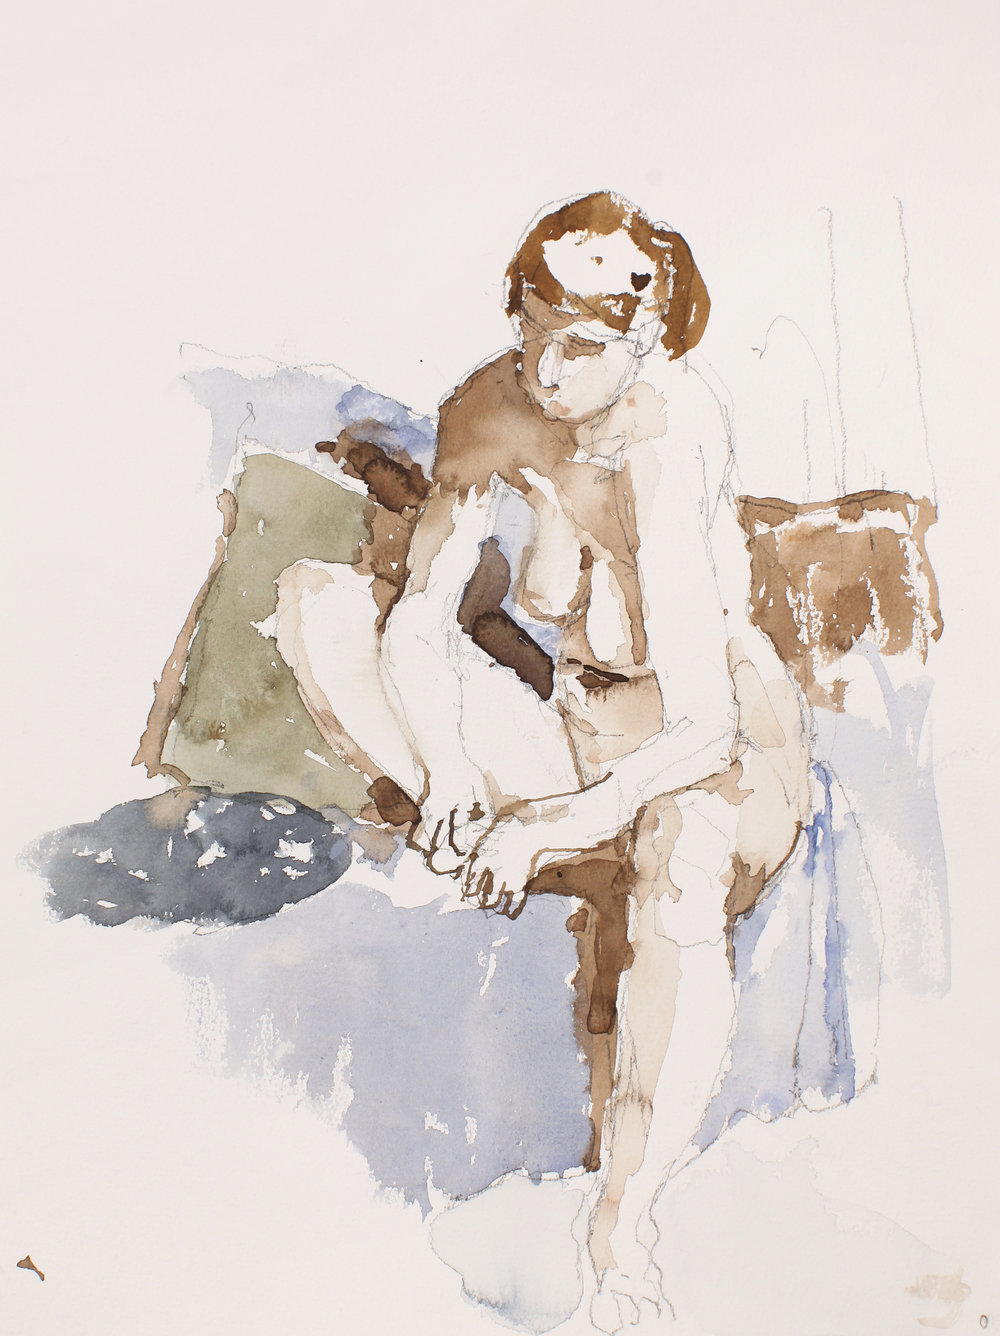 Nude Seated on Sofa with Pillows Holding Foot